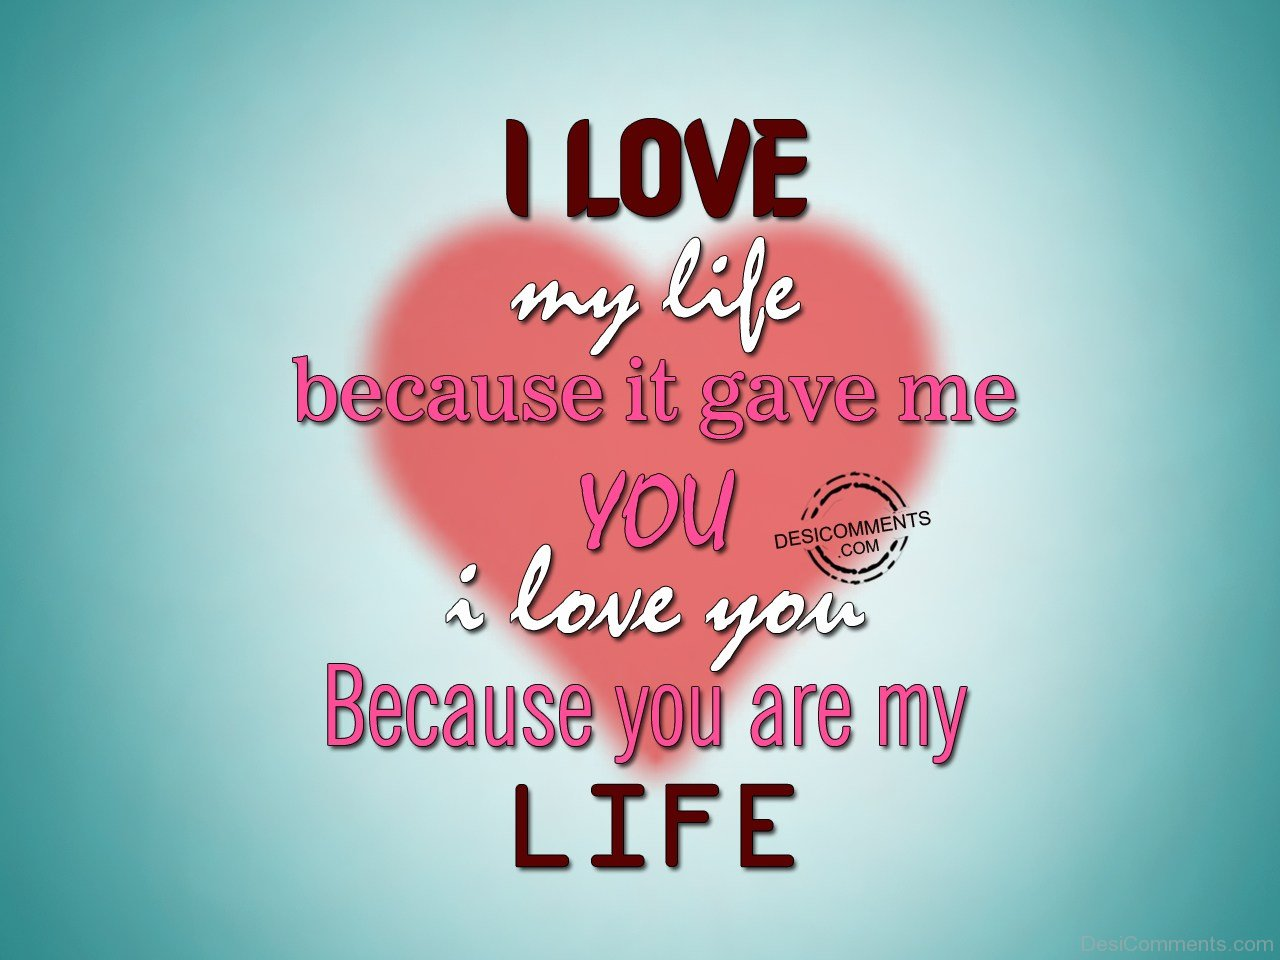 I Love My Life Because It Gave Me You Desicommentscom